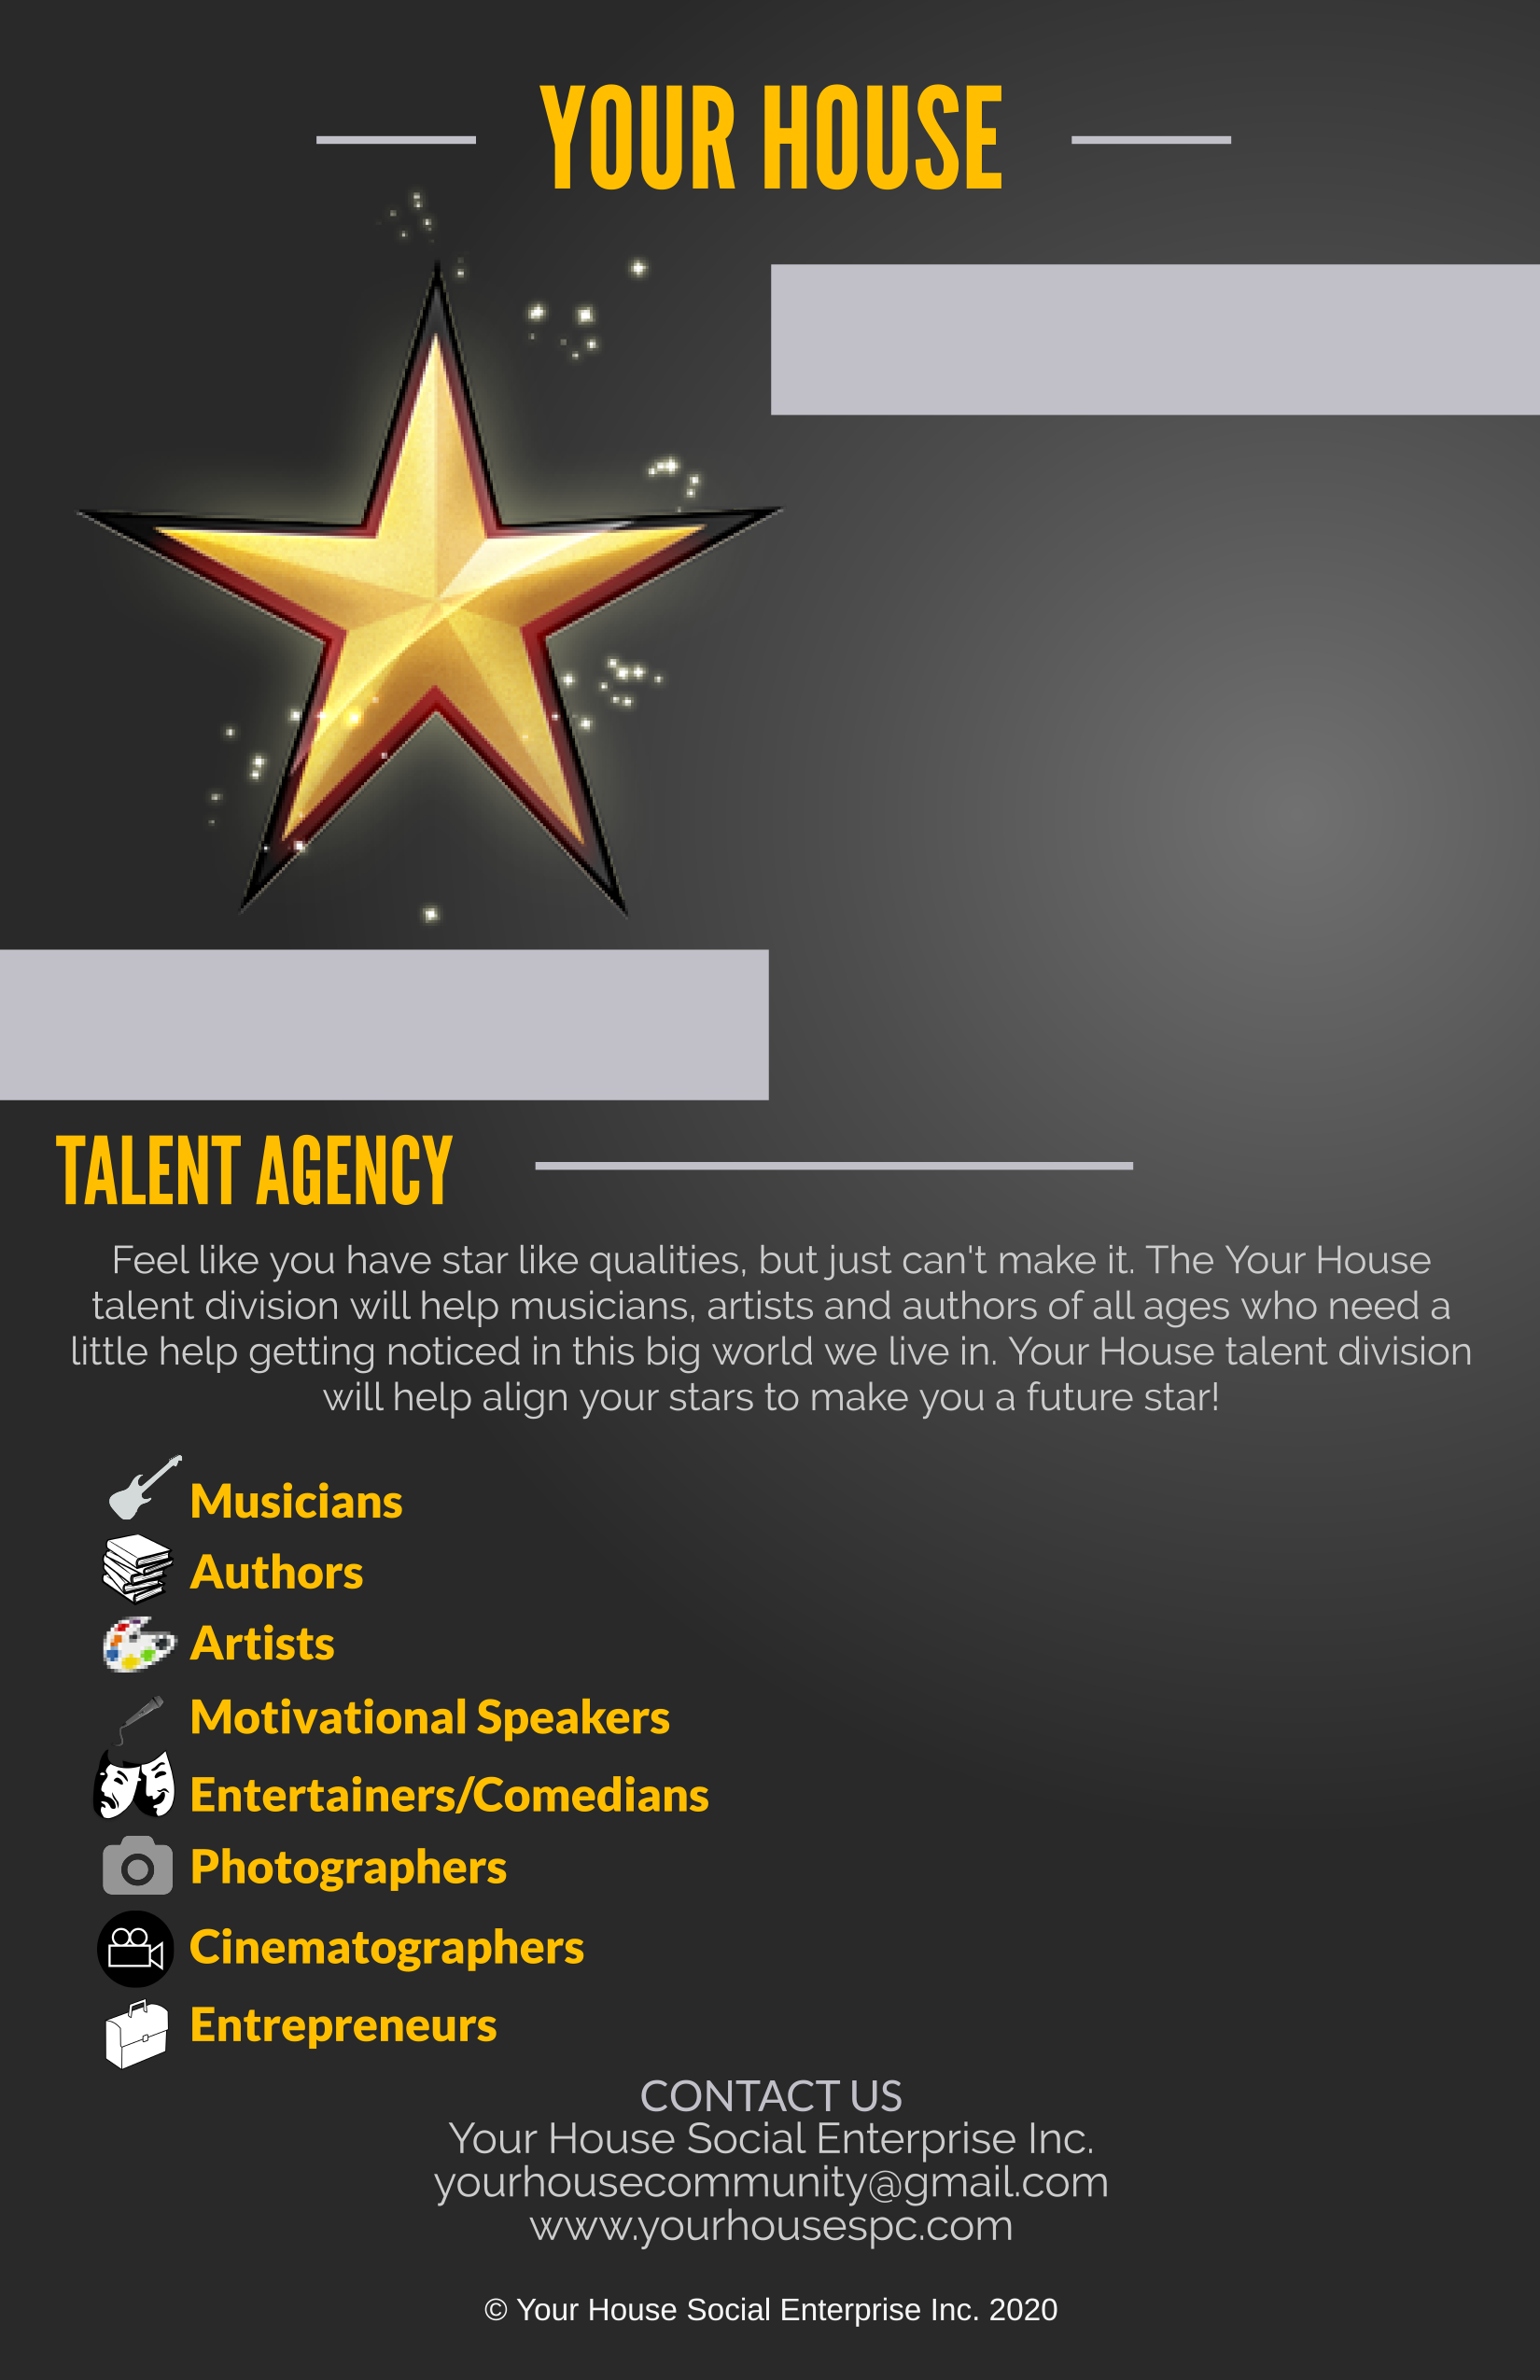 YOUR HOUSE TALENT AGENCY